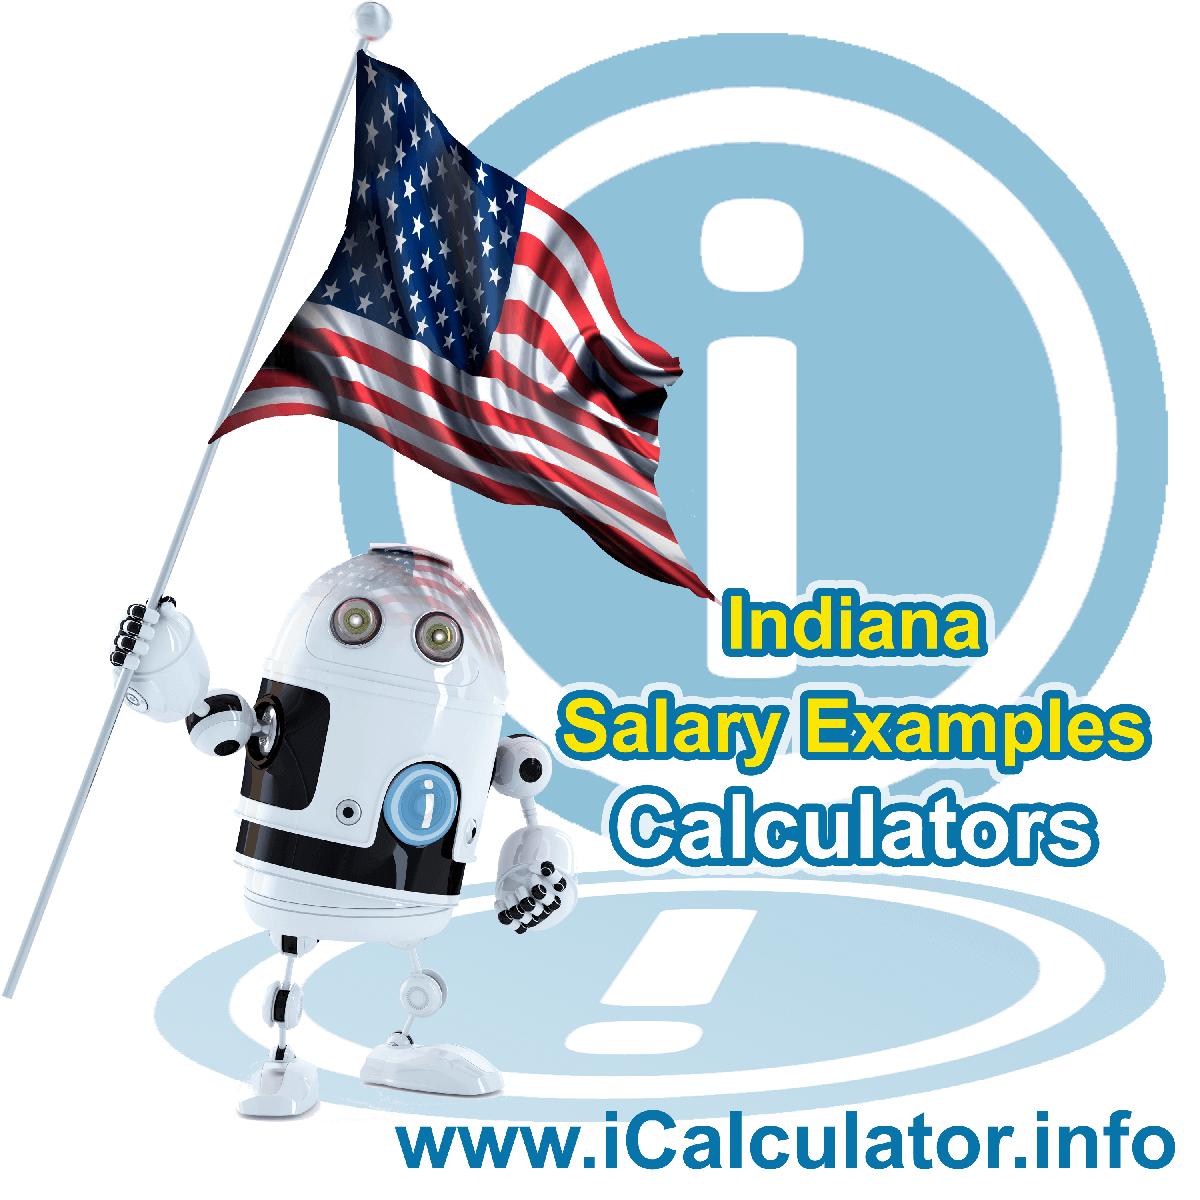 Indiana Salary Example for $200,000.00 in 2020 | iCalculator | $200,000.00 salary example for employee and employer paying Indiana State tincome taxes. Detailed salary after tax calculation including Indiana State Tax, Federal State Tax, Medicare Deductions, Social Security, Capital Gains and other income tax and salary deductions complete with supporting Indiana state tax tables